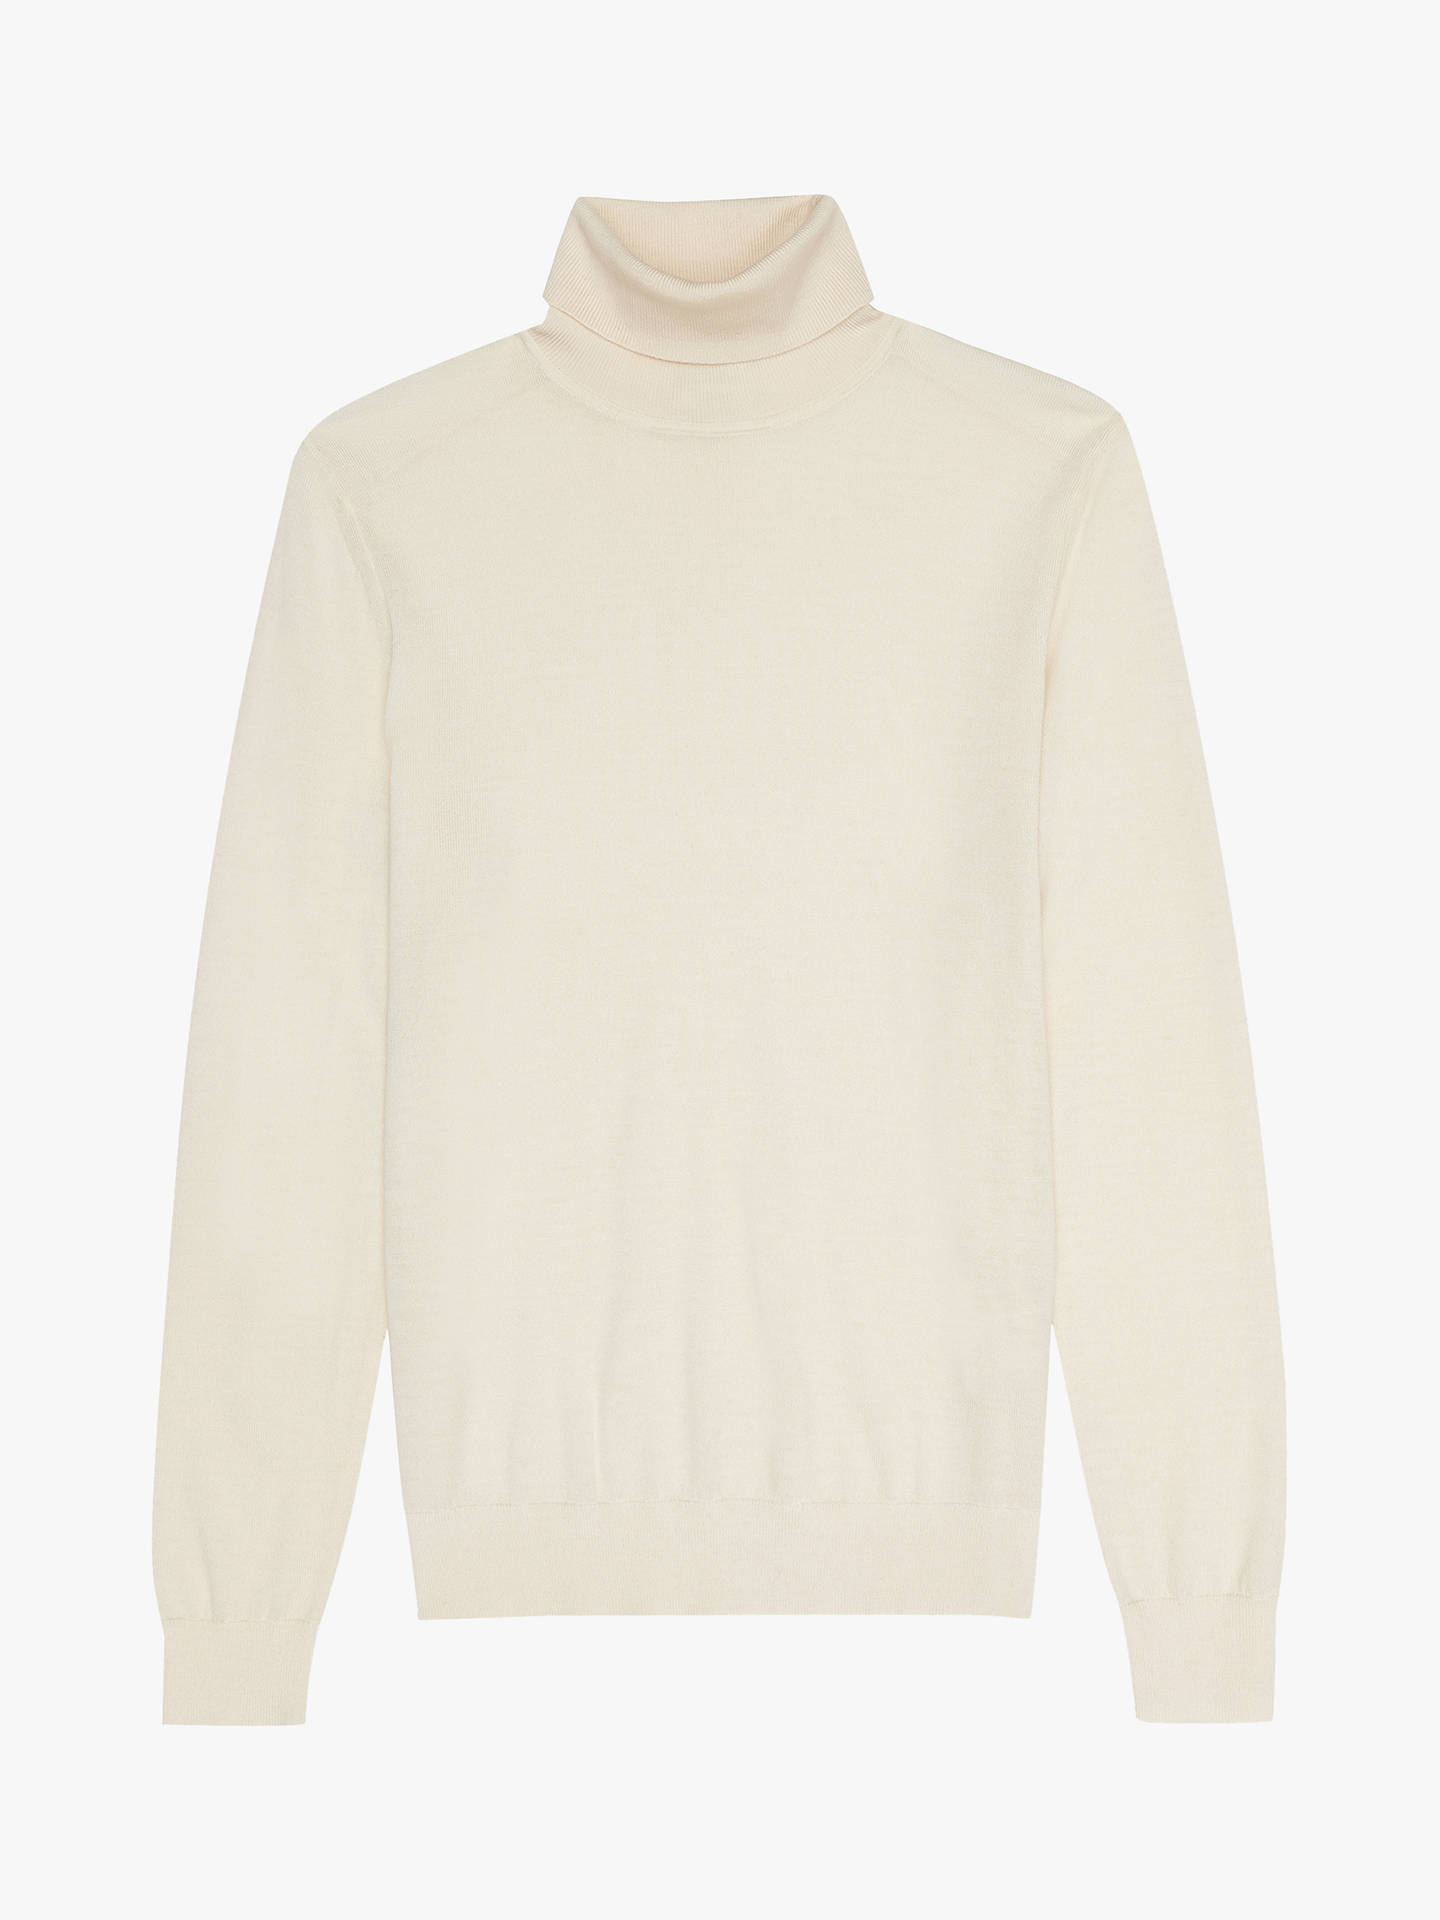 Buy Reiss Caine Roll Neck Sweater, Ecru, S Online at johnlewis.com